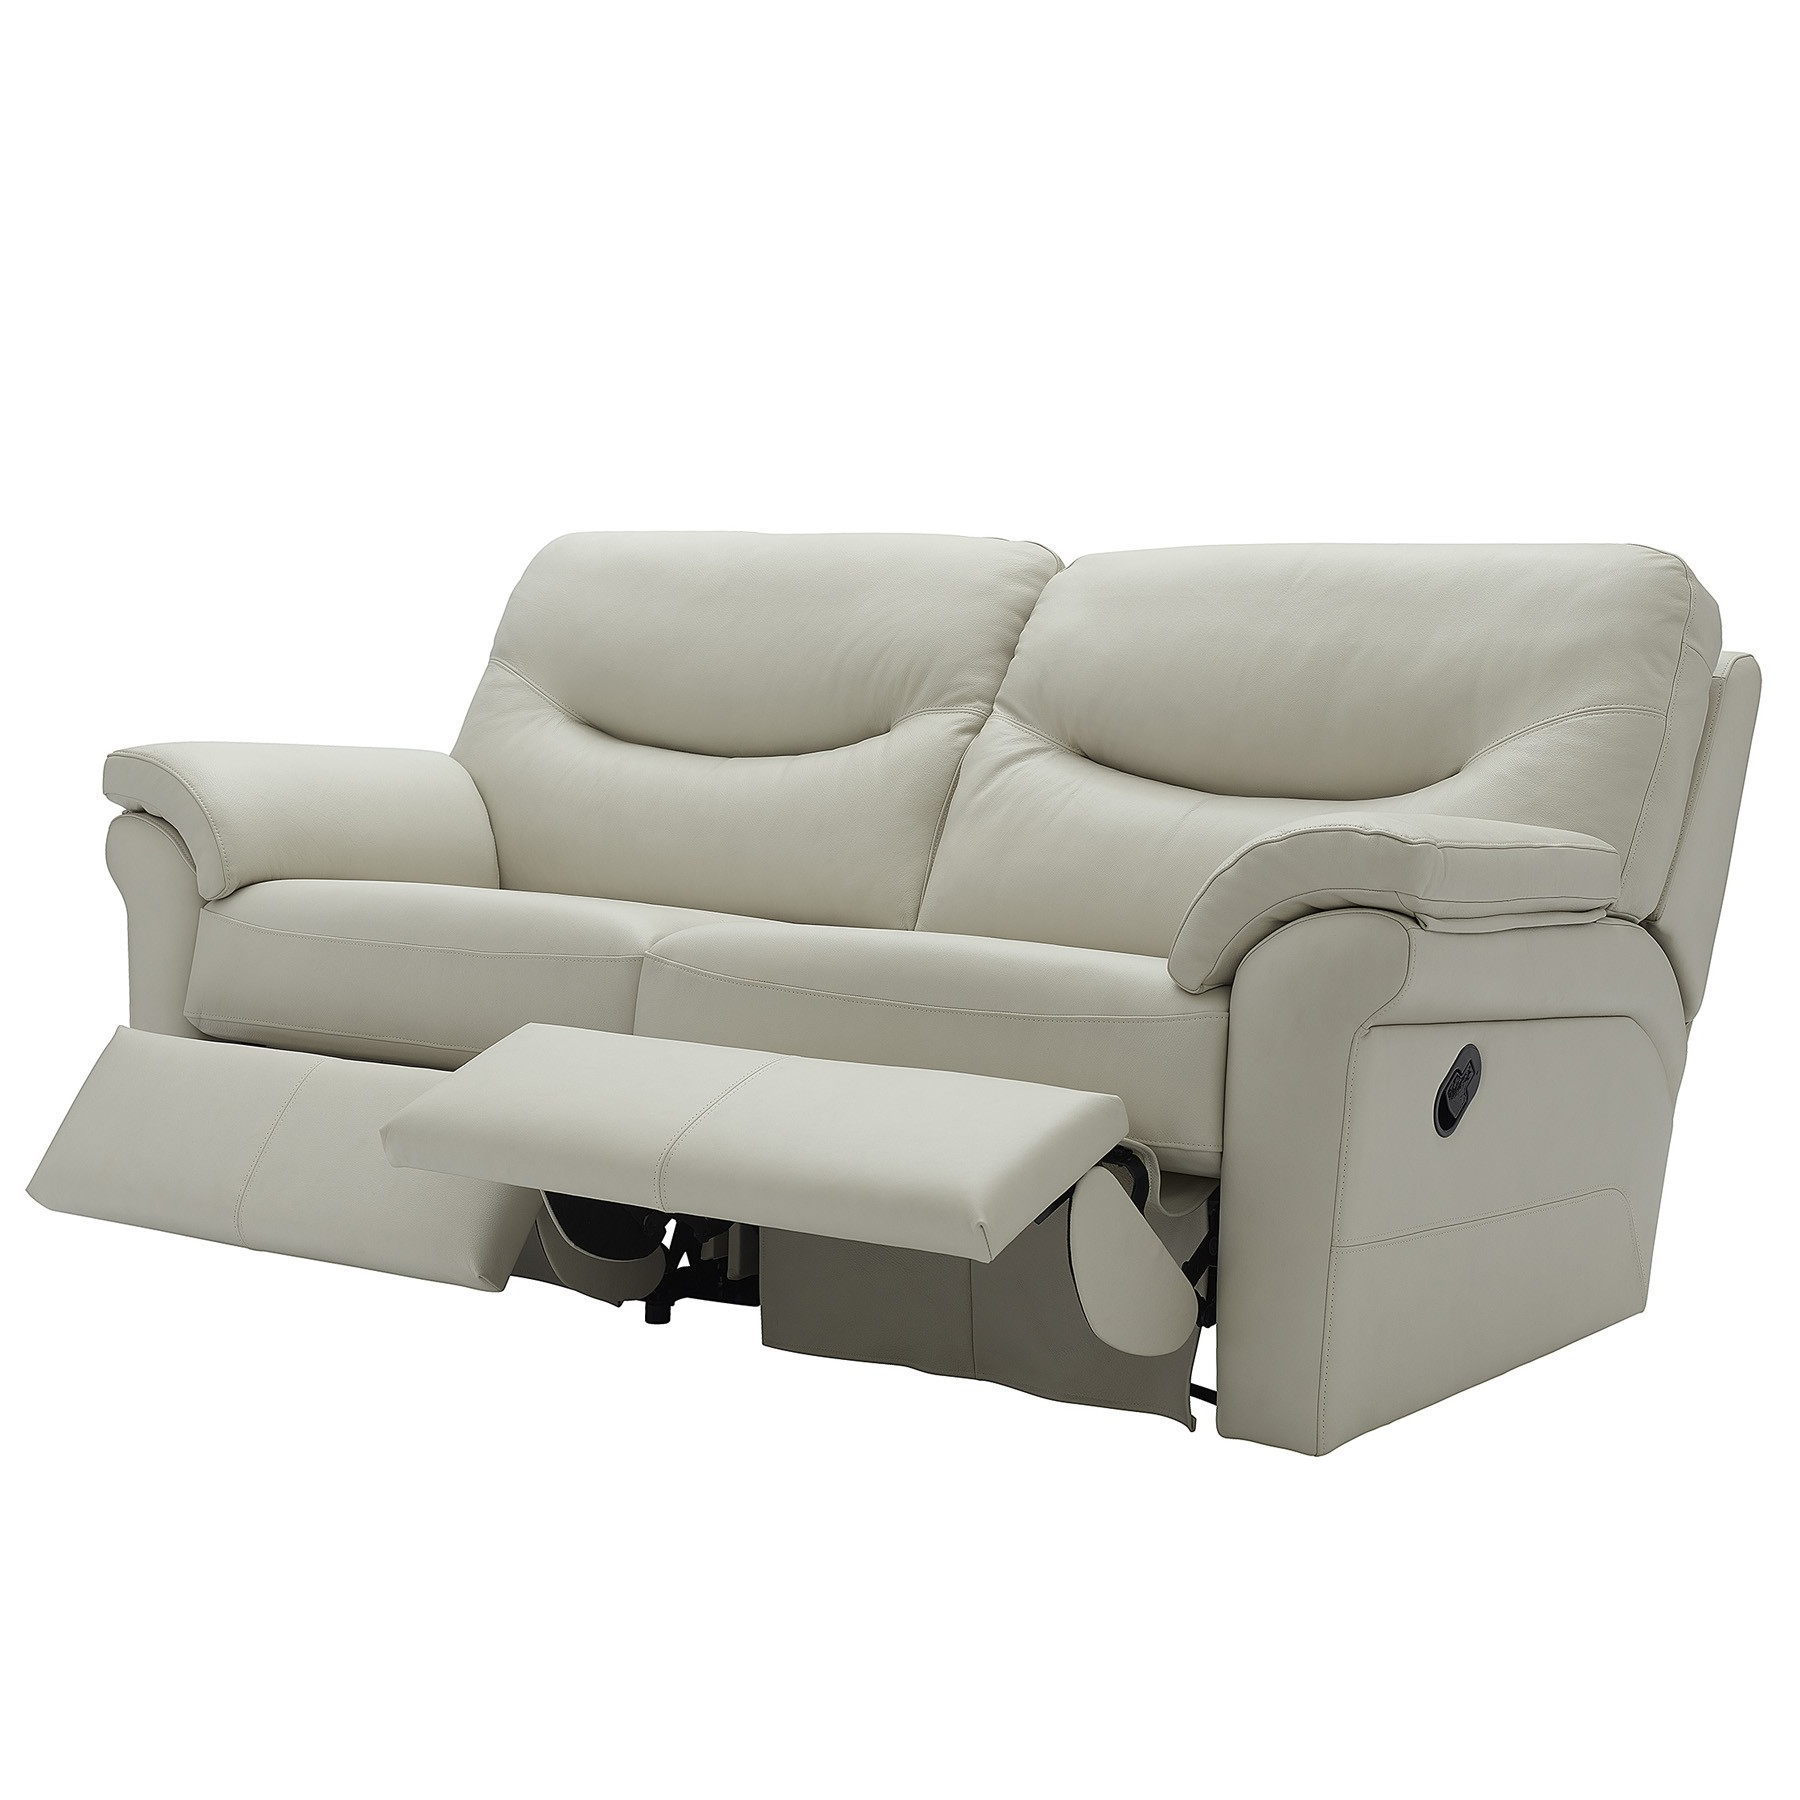 G Plan Washington Leather 3 Seater Electric Double Recliner Sofa Intended For Fashionable Recliner Sofa Chairs (Gallery 20 of 20)